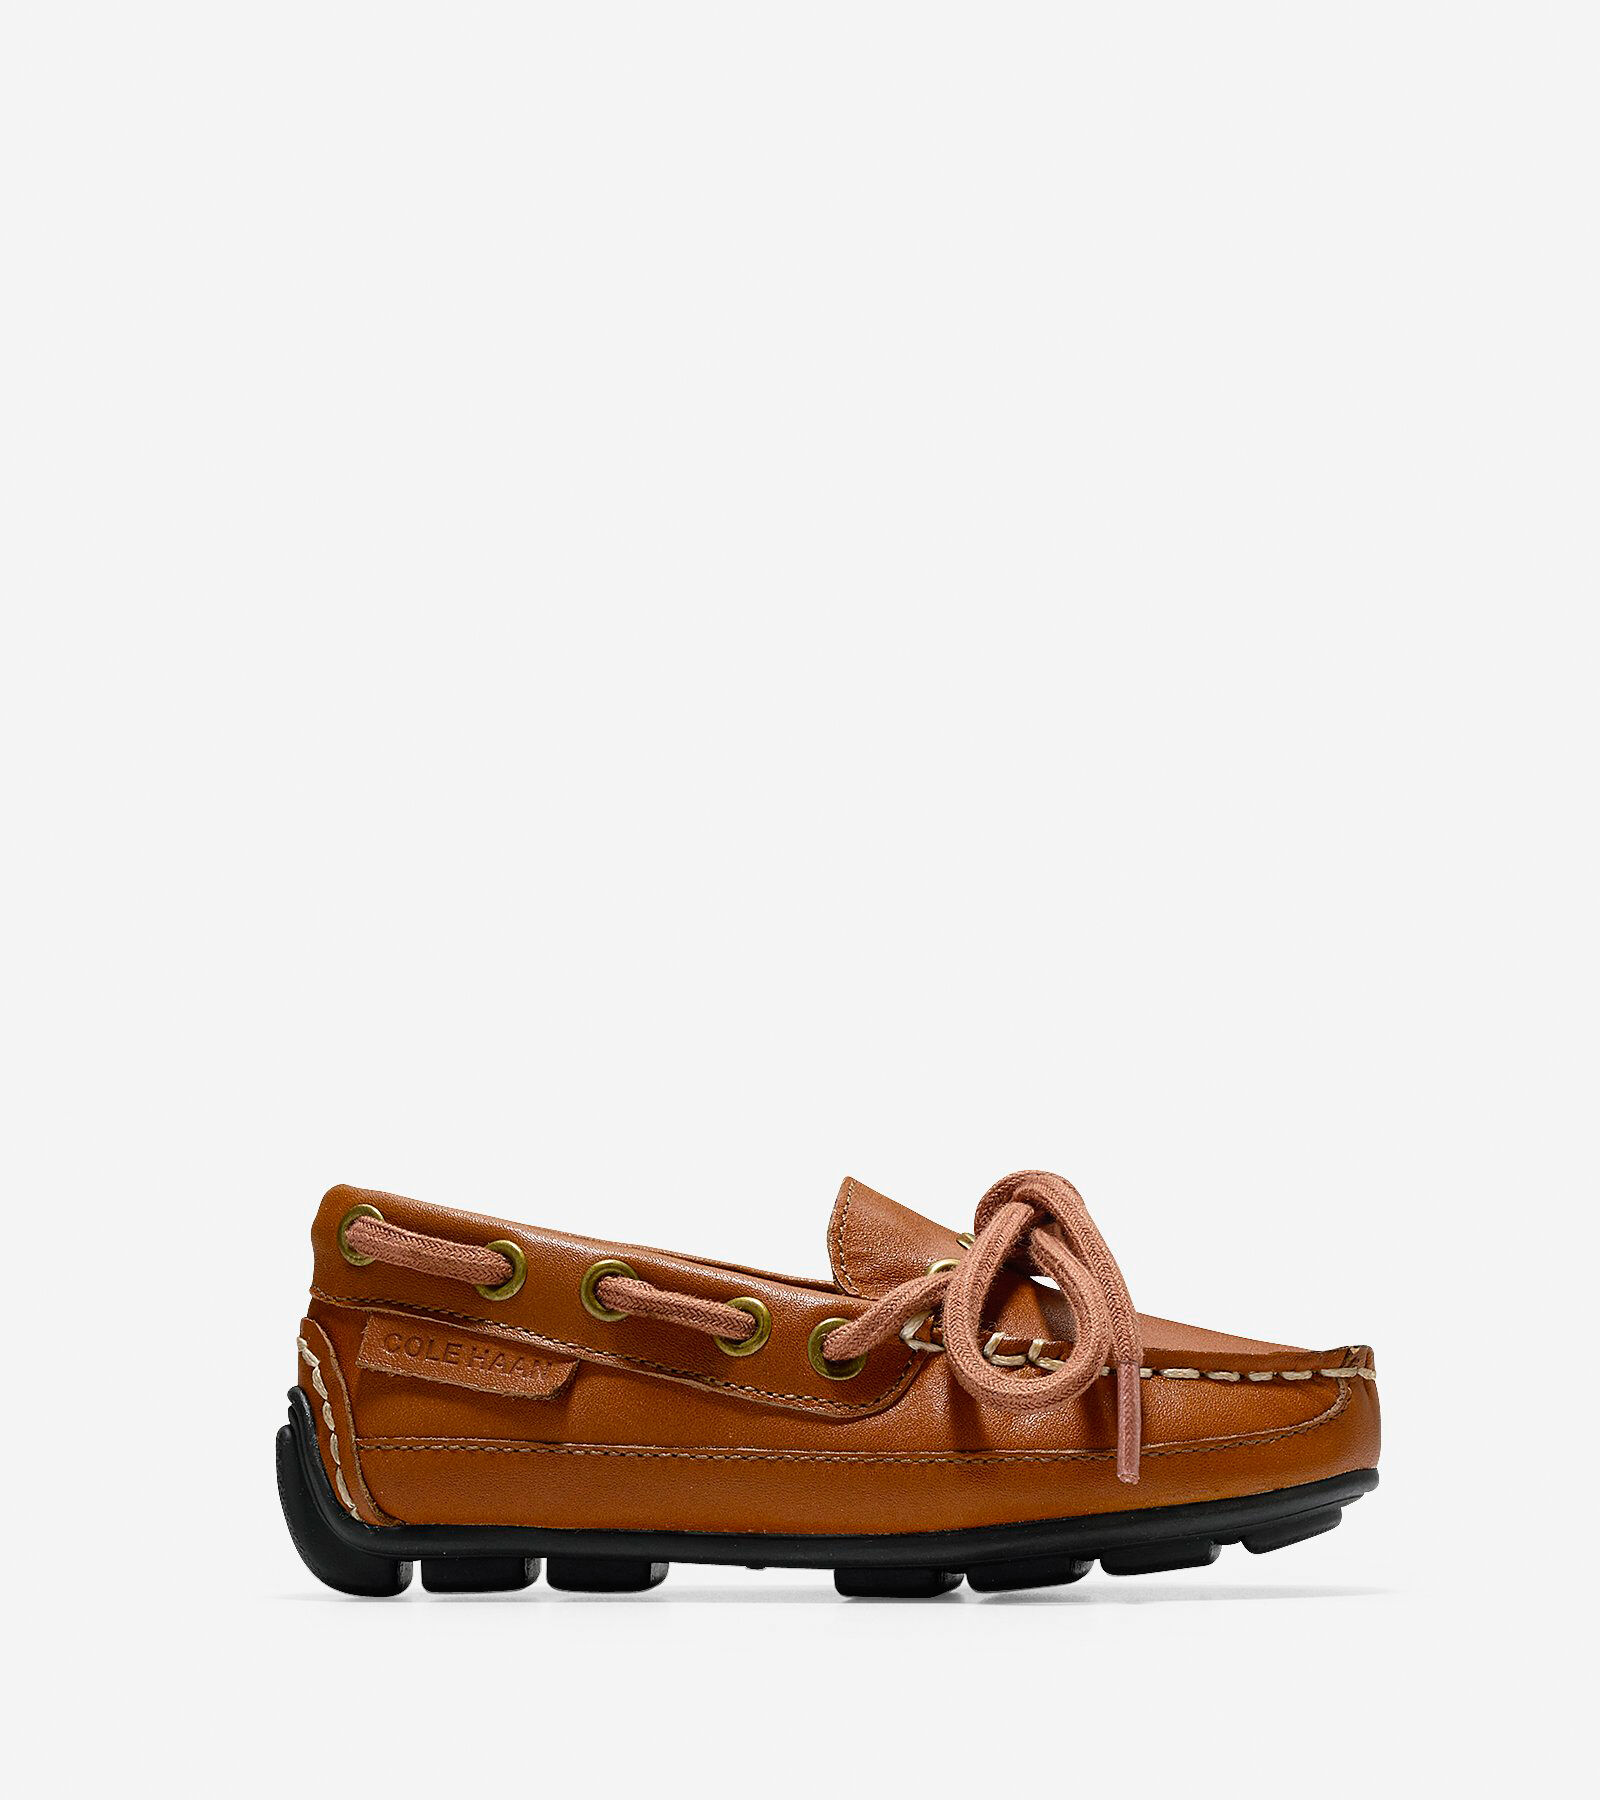 cole haan shoes 2016 may tims boots boys 711682